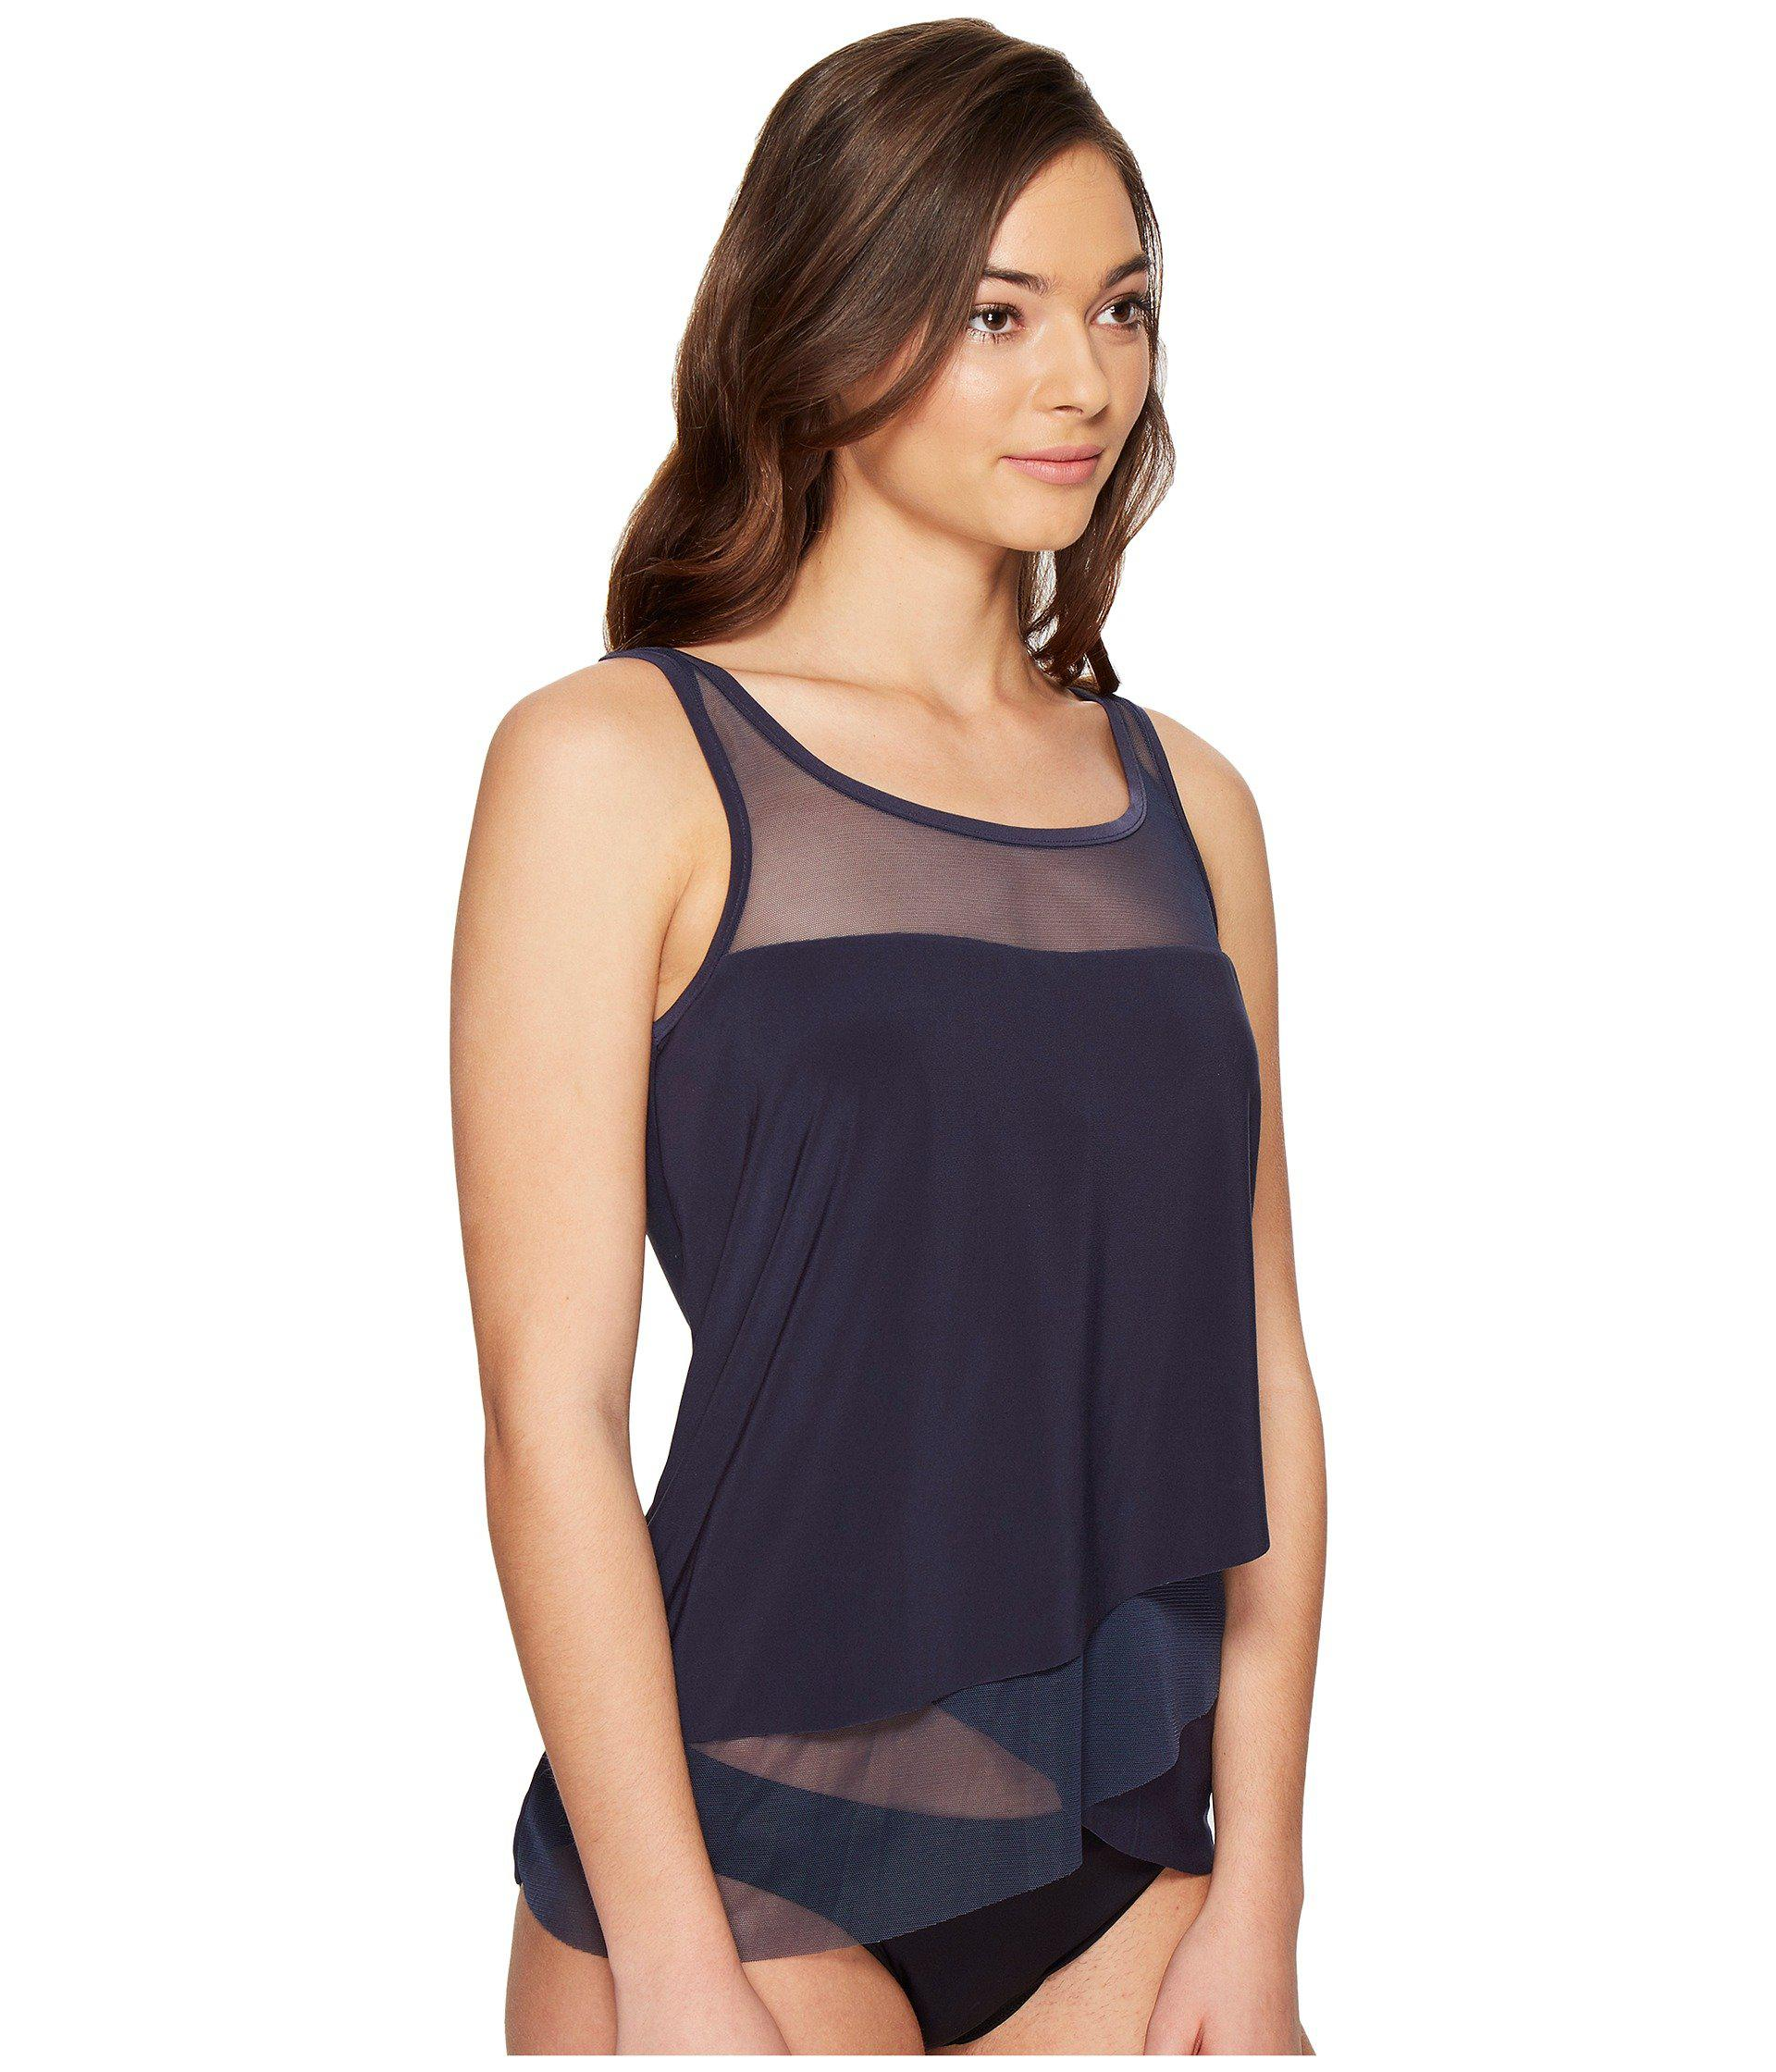 a55b461da0 Miraclesuit Solid Separates Mirage Tankini Top in Blue - Lyst